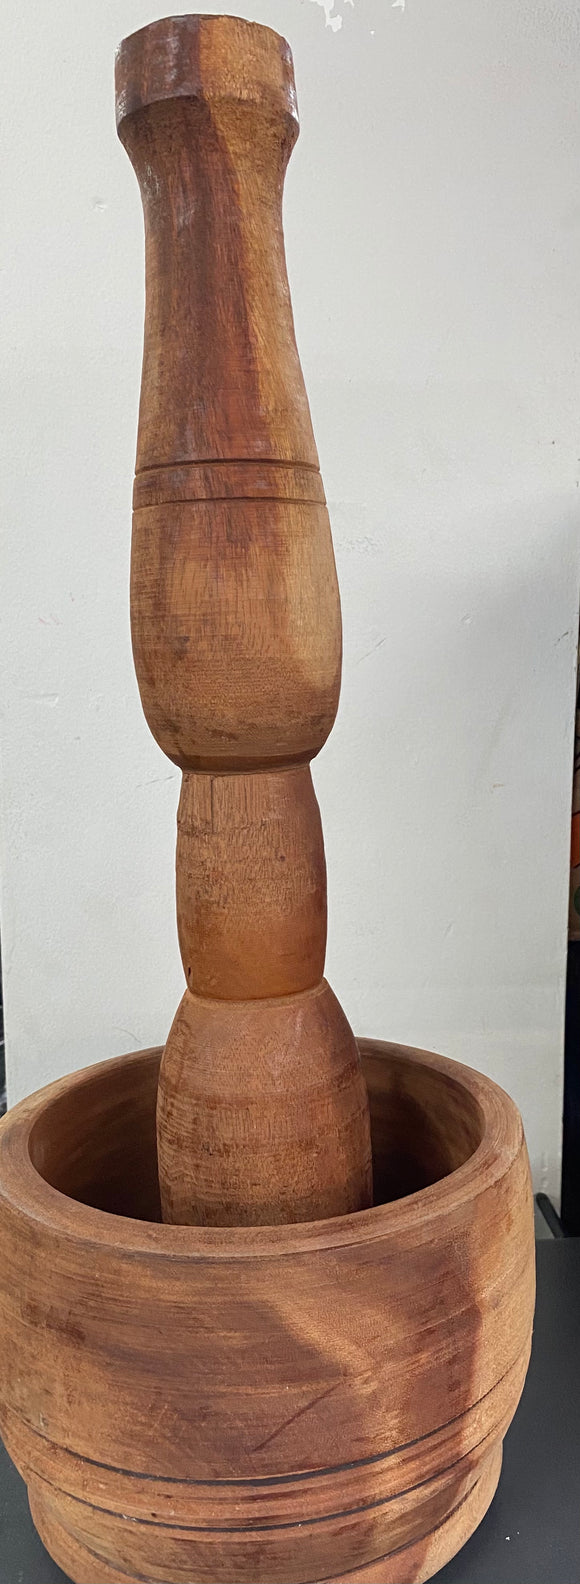 Mortar and pestle small